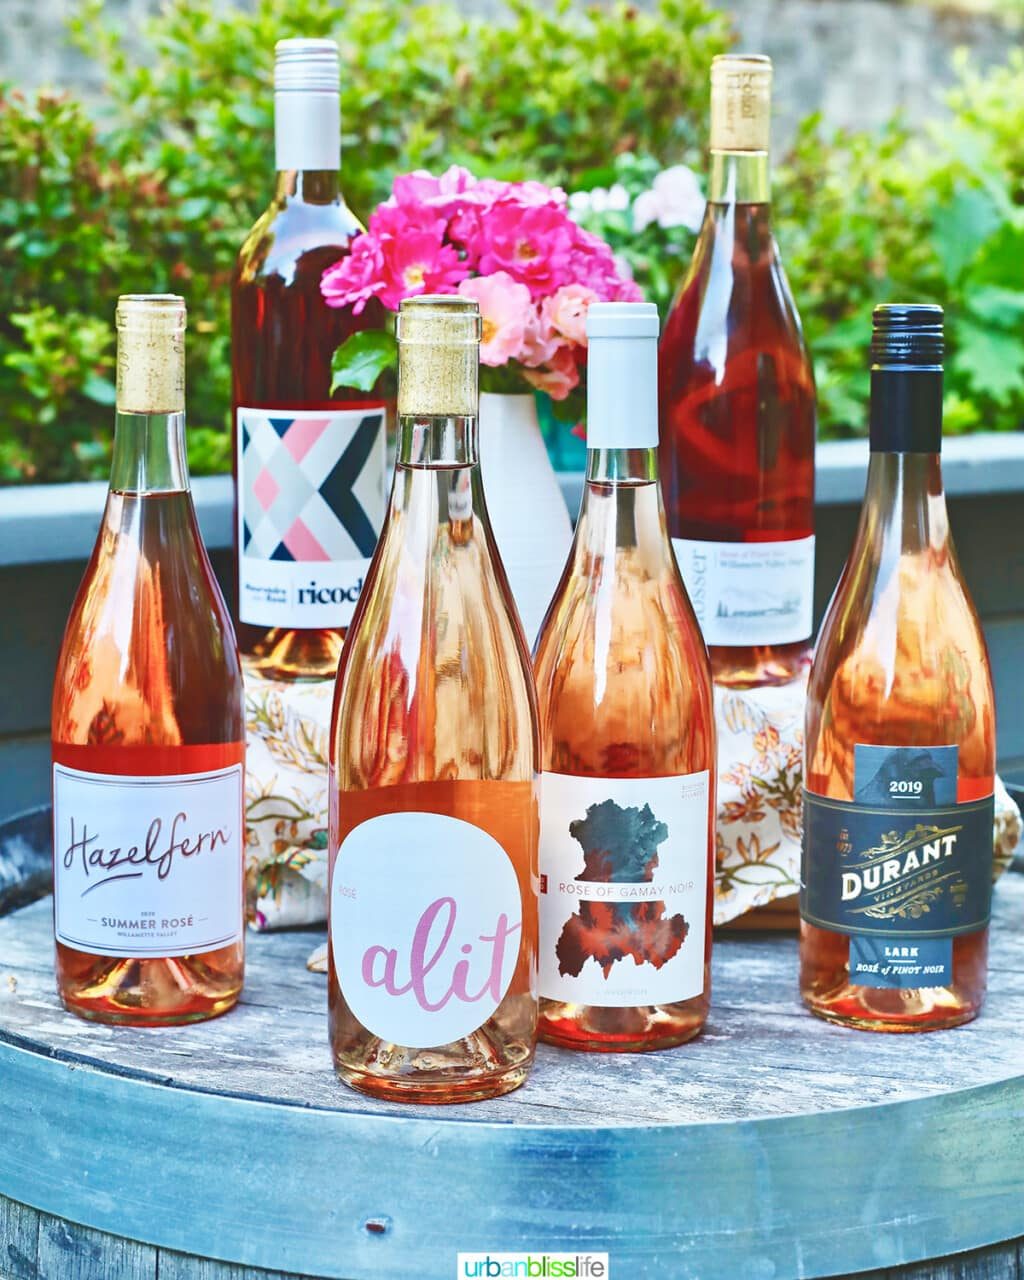 7 bottles of the best rosé wines to drink in 2021 on a wine barrel